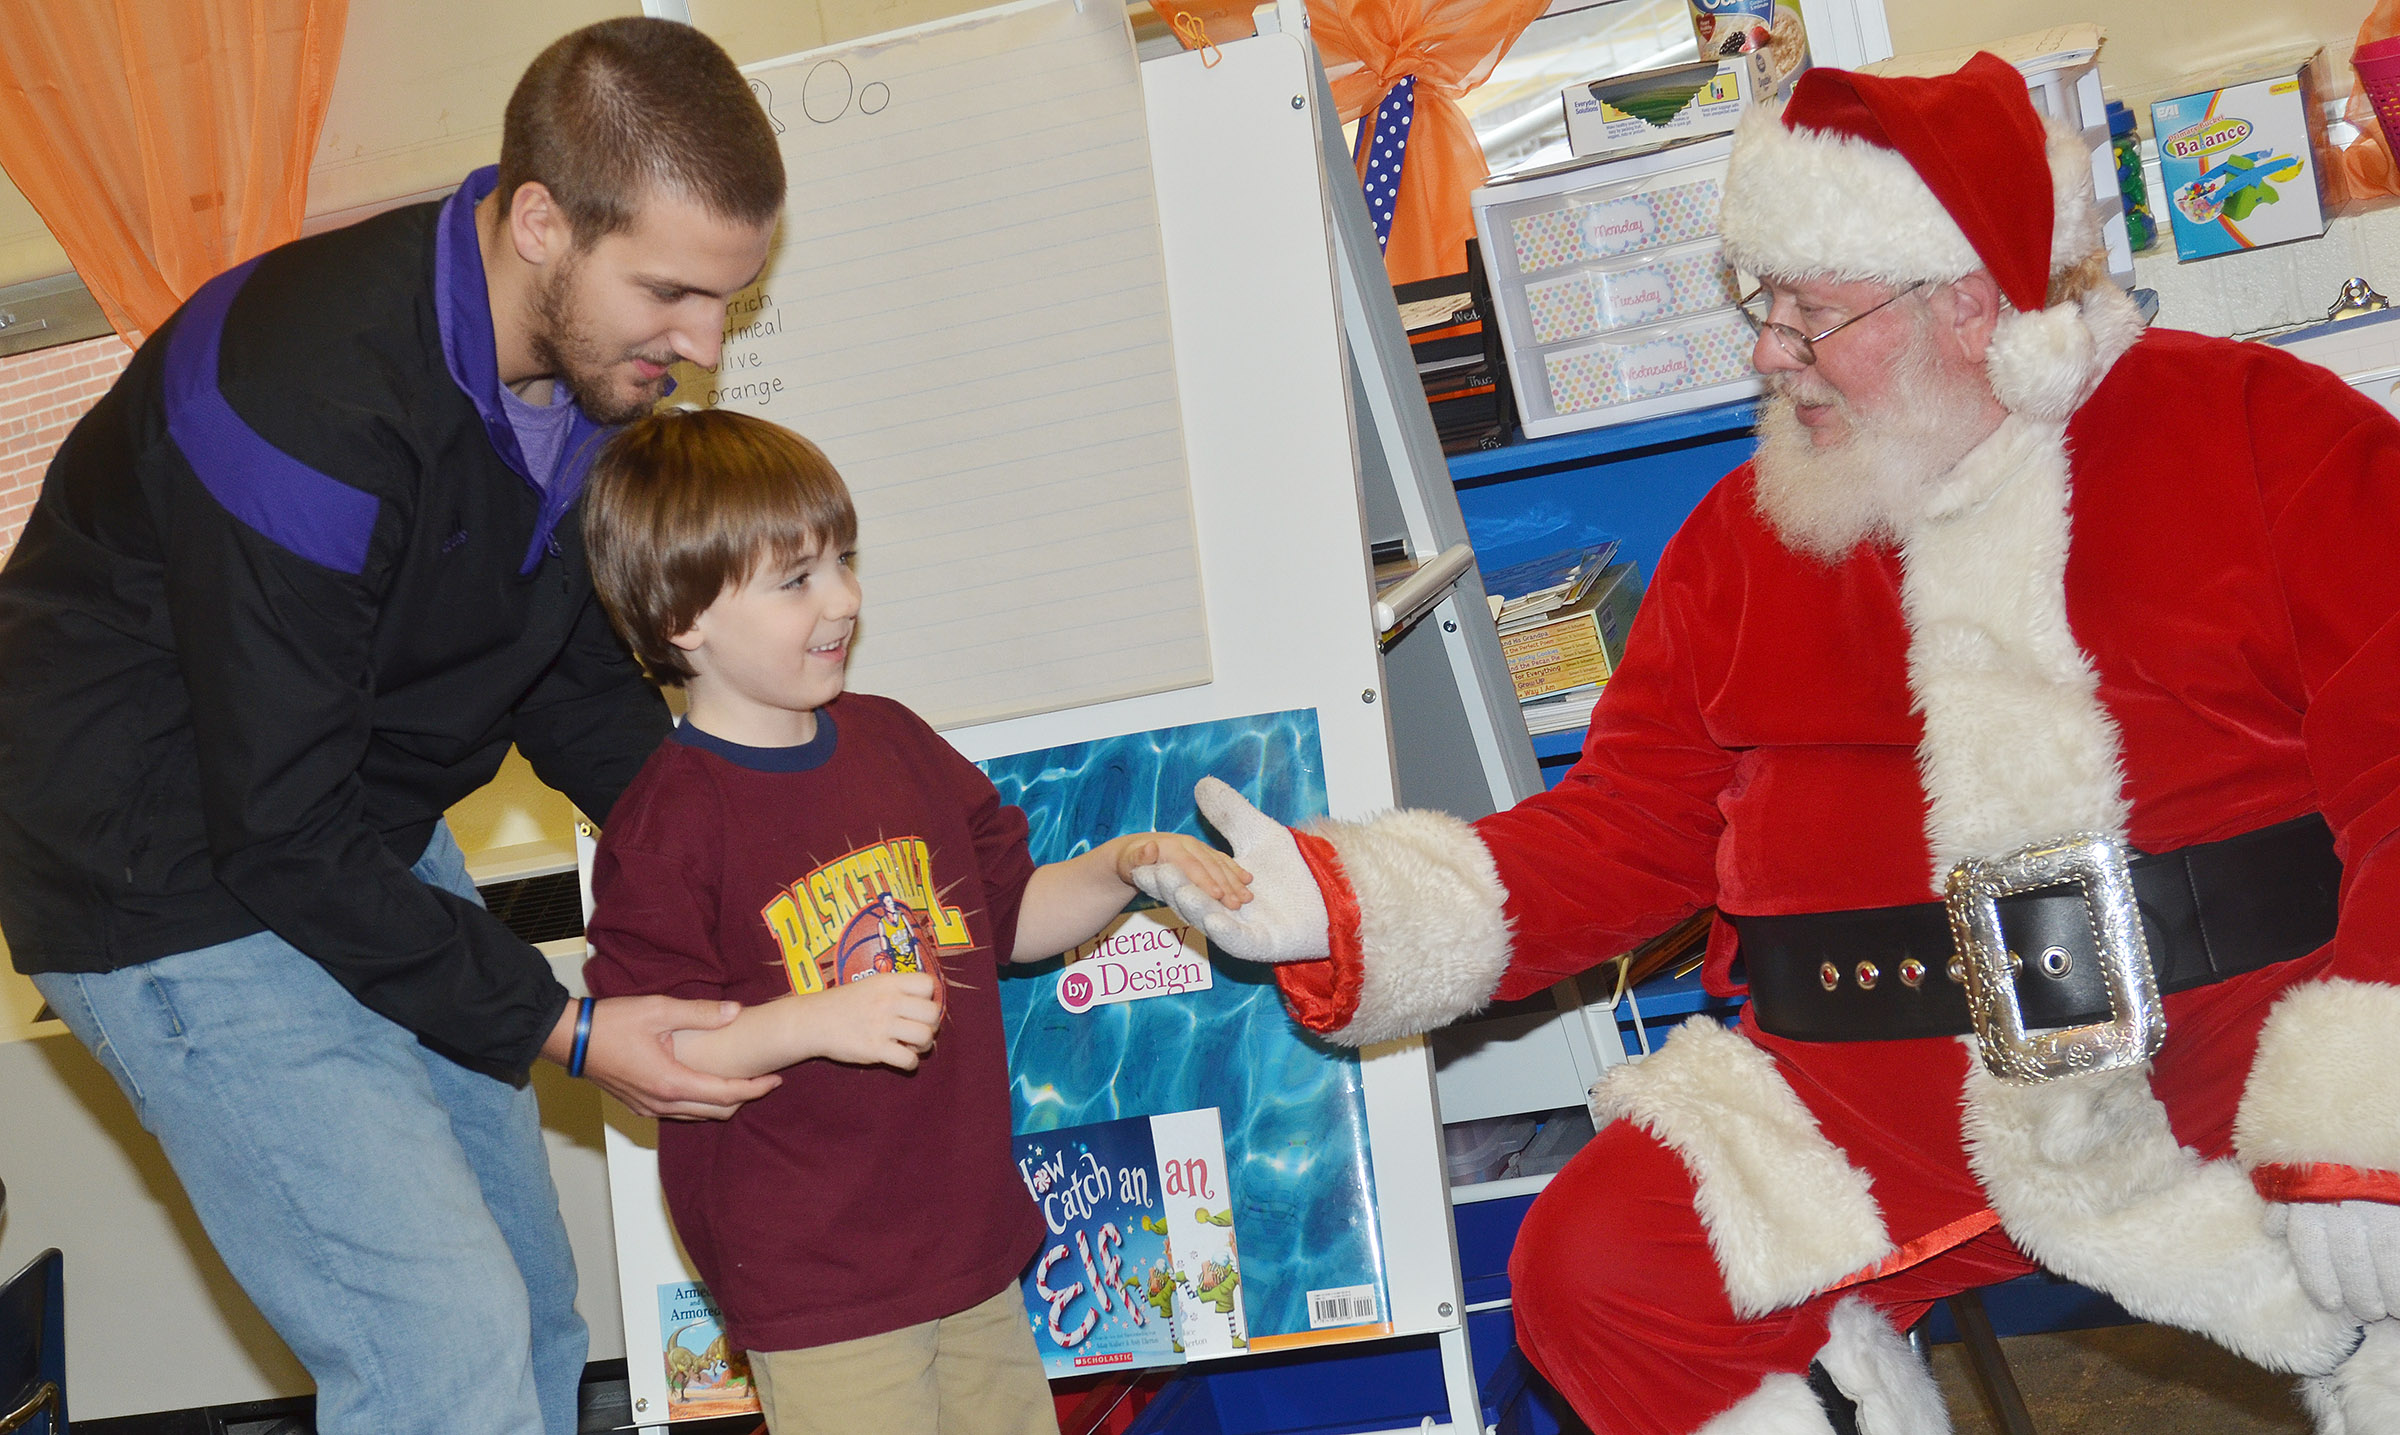 CES kindergartener Finley Williams greets Santa, with some help from assistant Zach Durham.